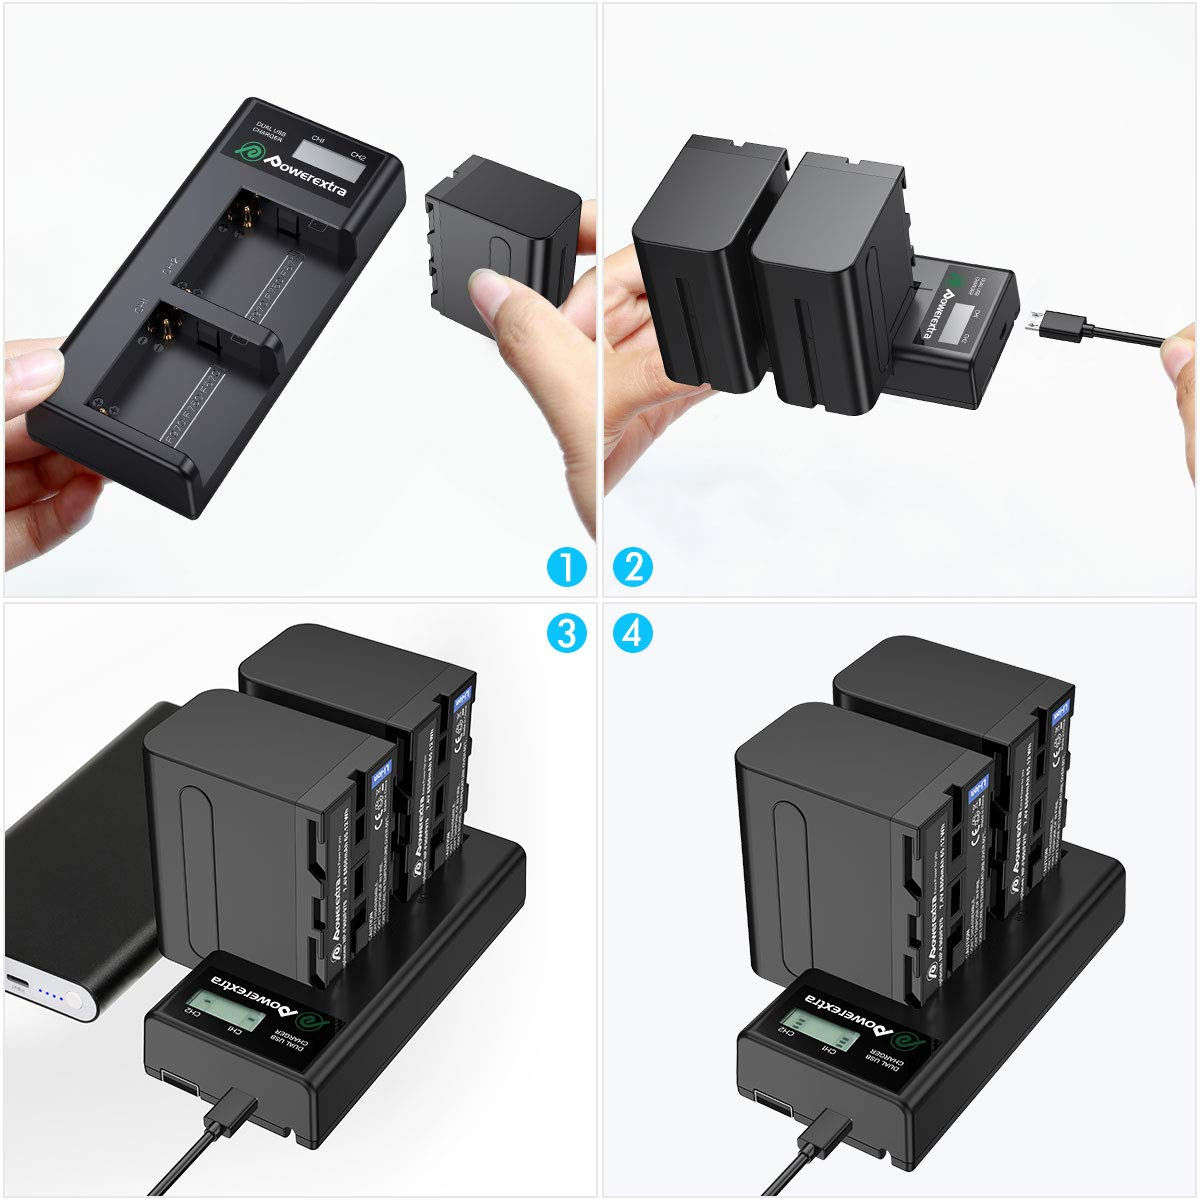 Powerextra 2 Pack Replacement Sony NP-F970 Battery and Smart LCD Display Dual USB Charger for Sony NP-F930 NP-F950 NP-F960 Battery and Sony CCD-SC55, TR516, TR716, TR818, TR910, TR917 by Powerextra (Image #4)